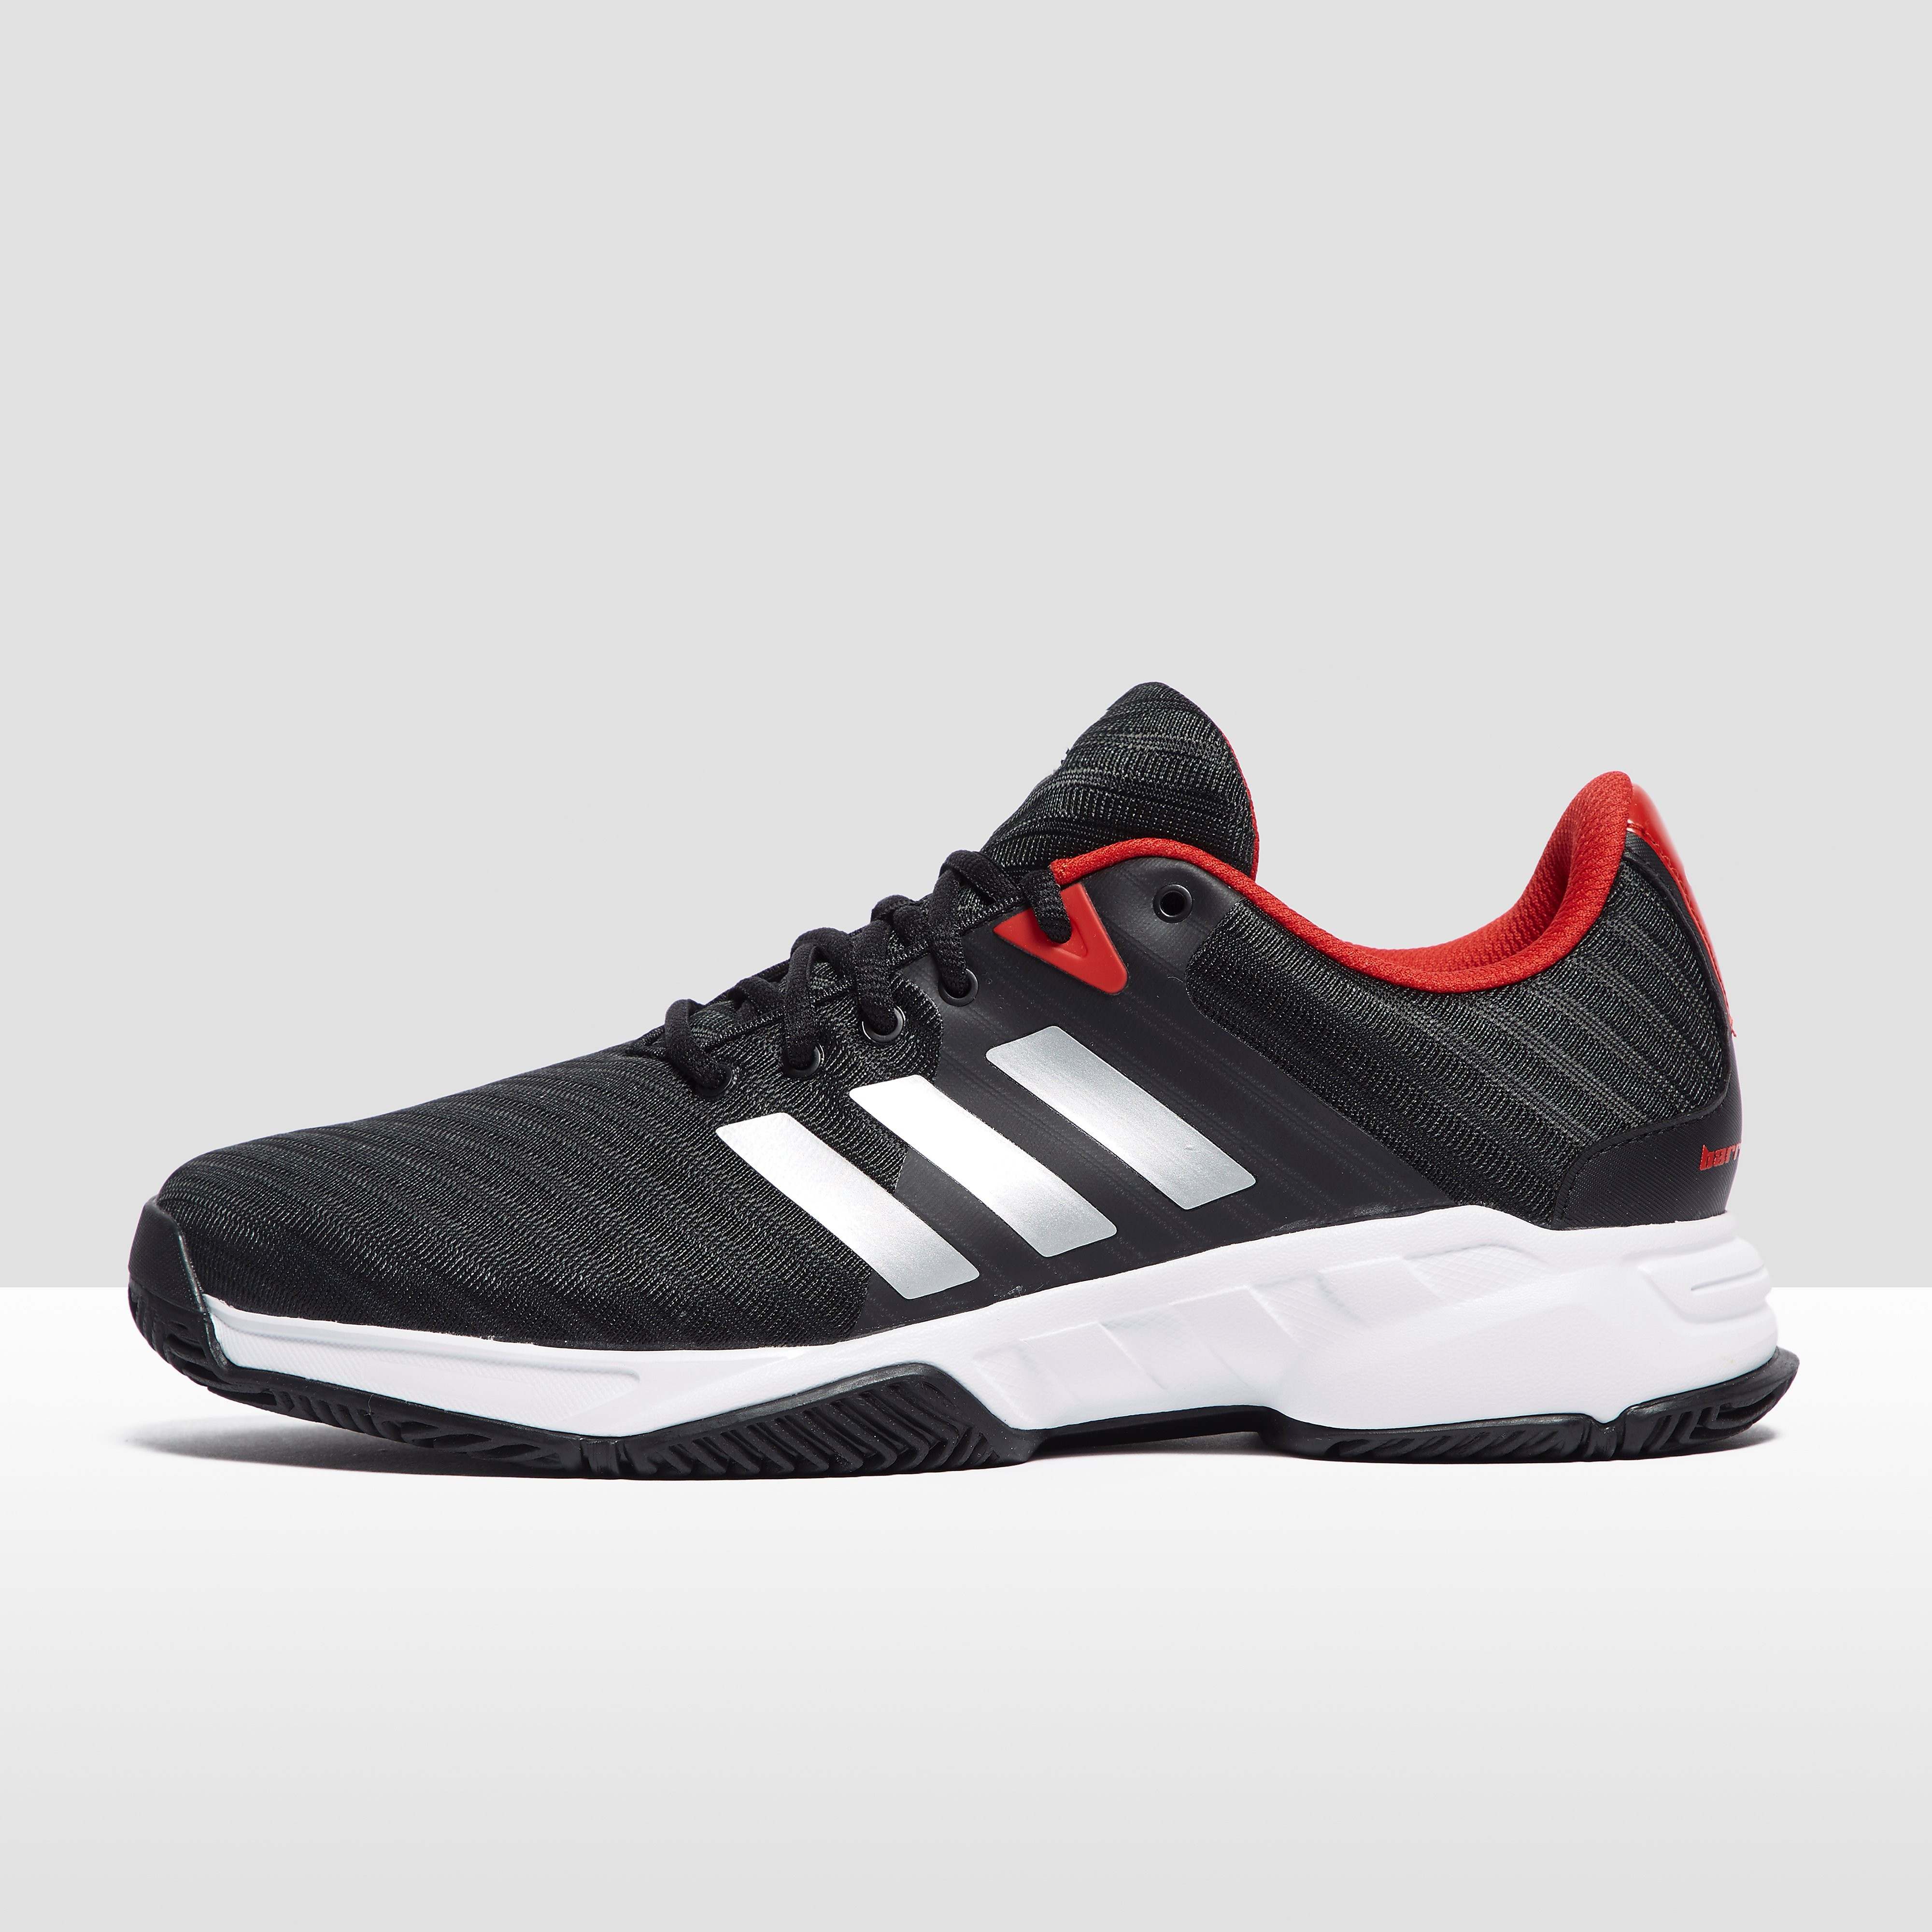 adidas Barricade Court 3 All Court Men's Tennis Shoes